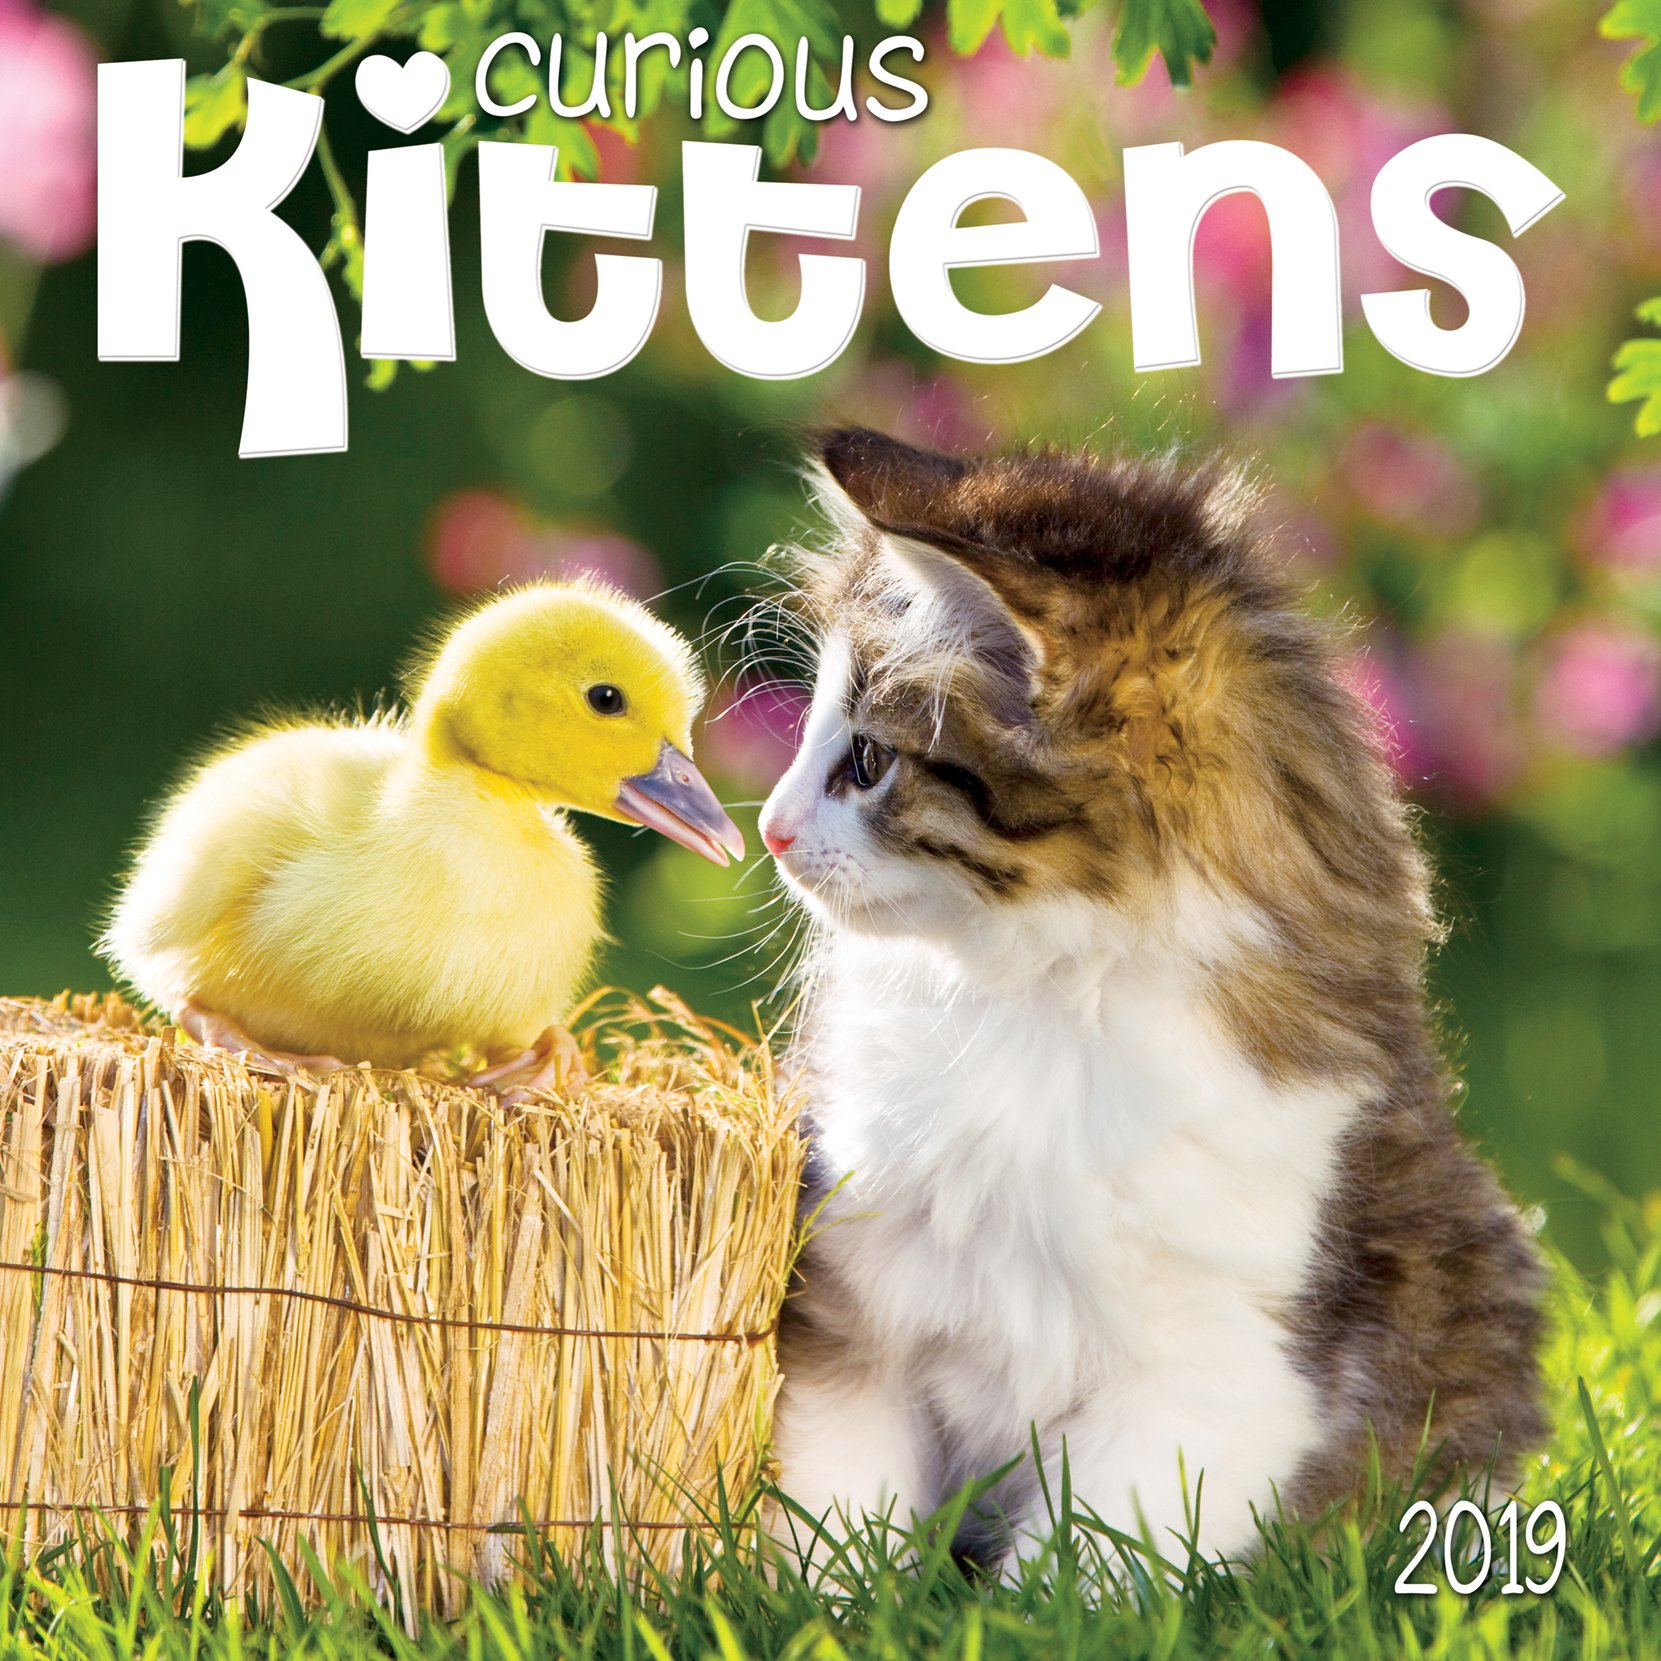 Curious Kittens 2019 Wall Calendar Calendar – August 1, 2018 Zebra Publishing 1772182850 General Home & Garden